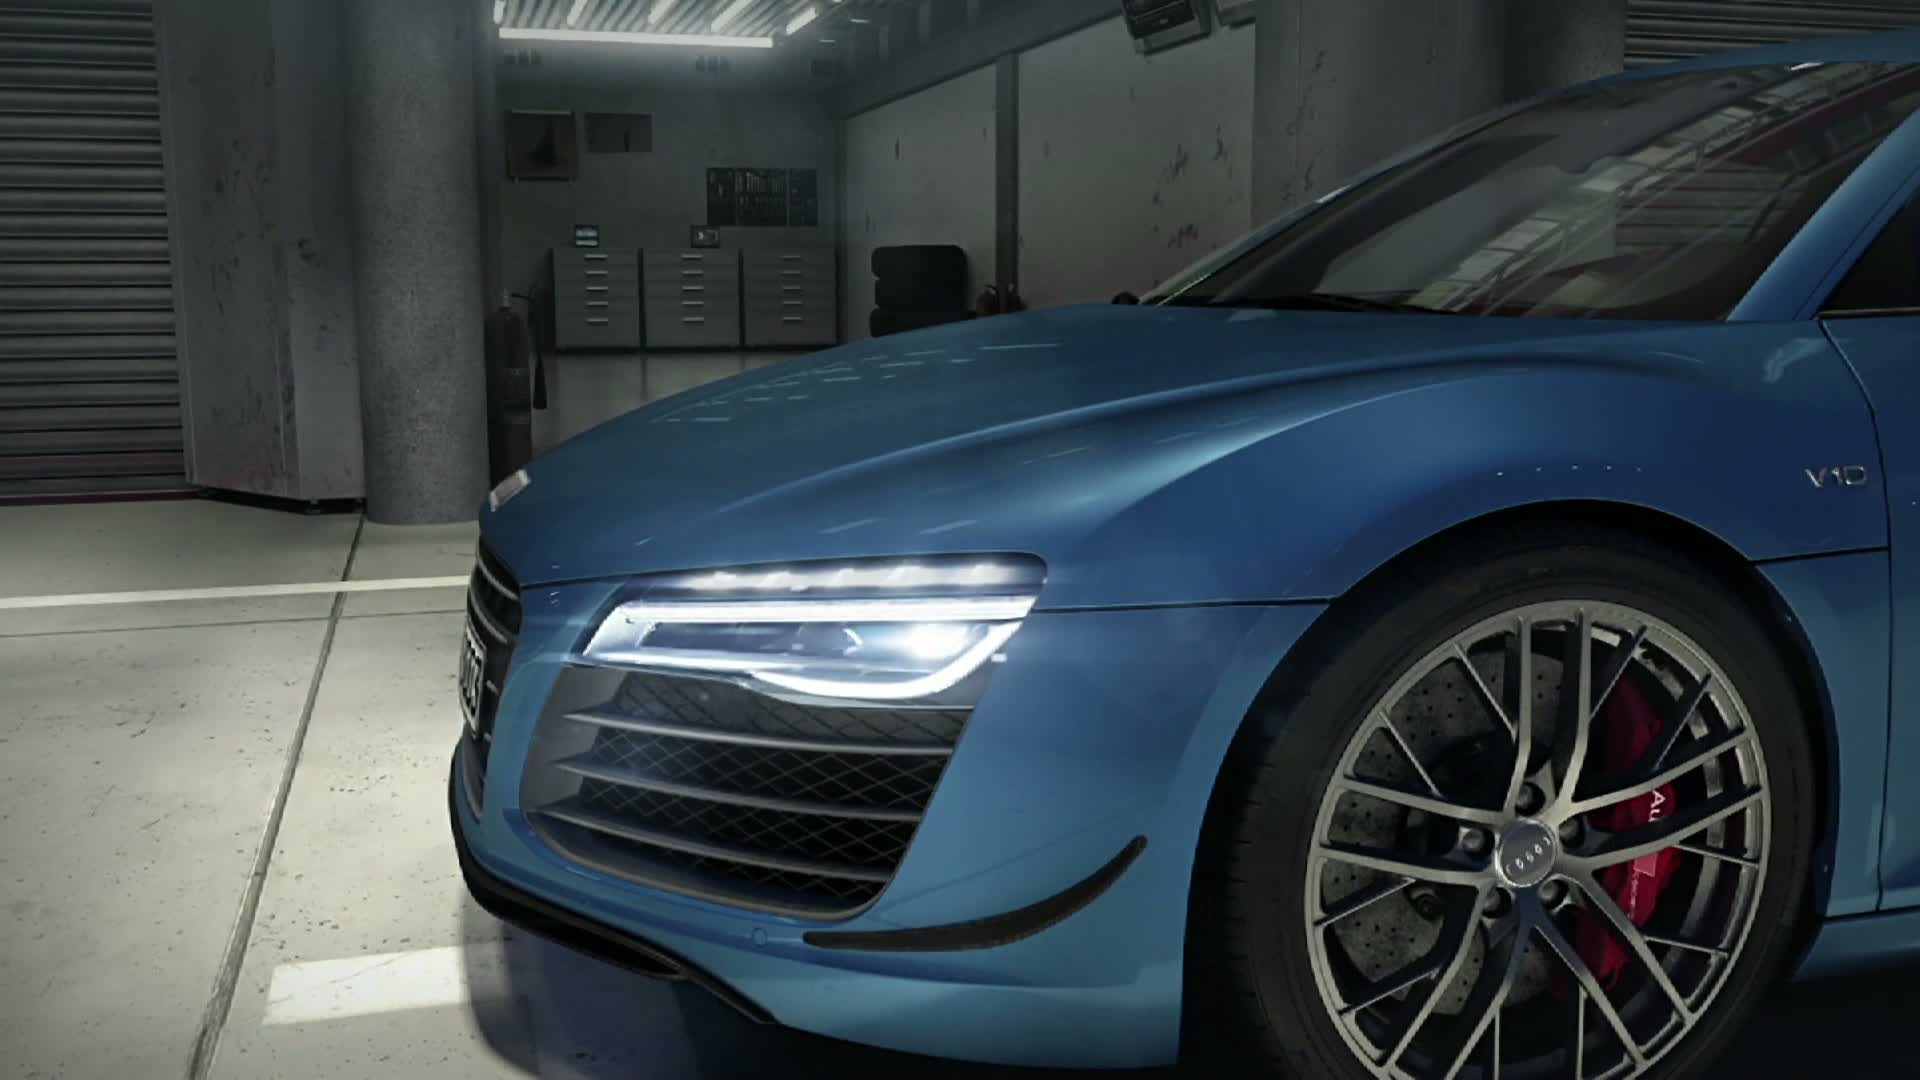 The Audi R8 LMX - Animation